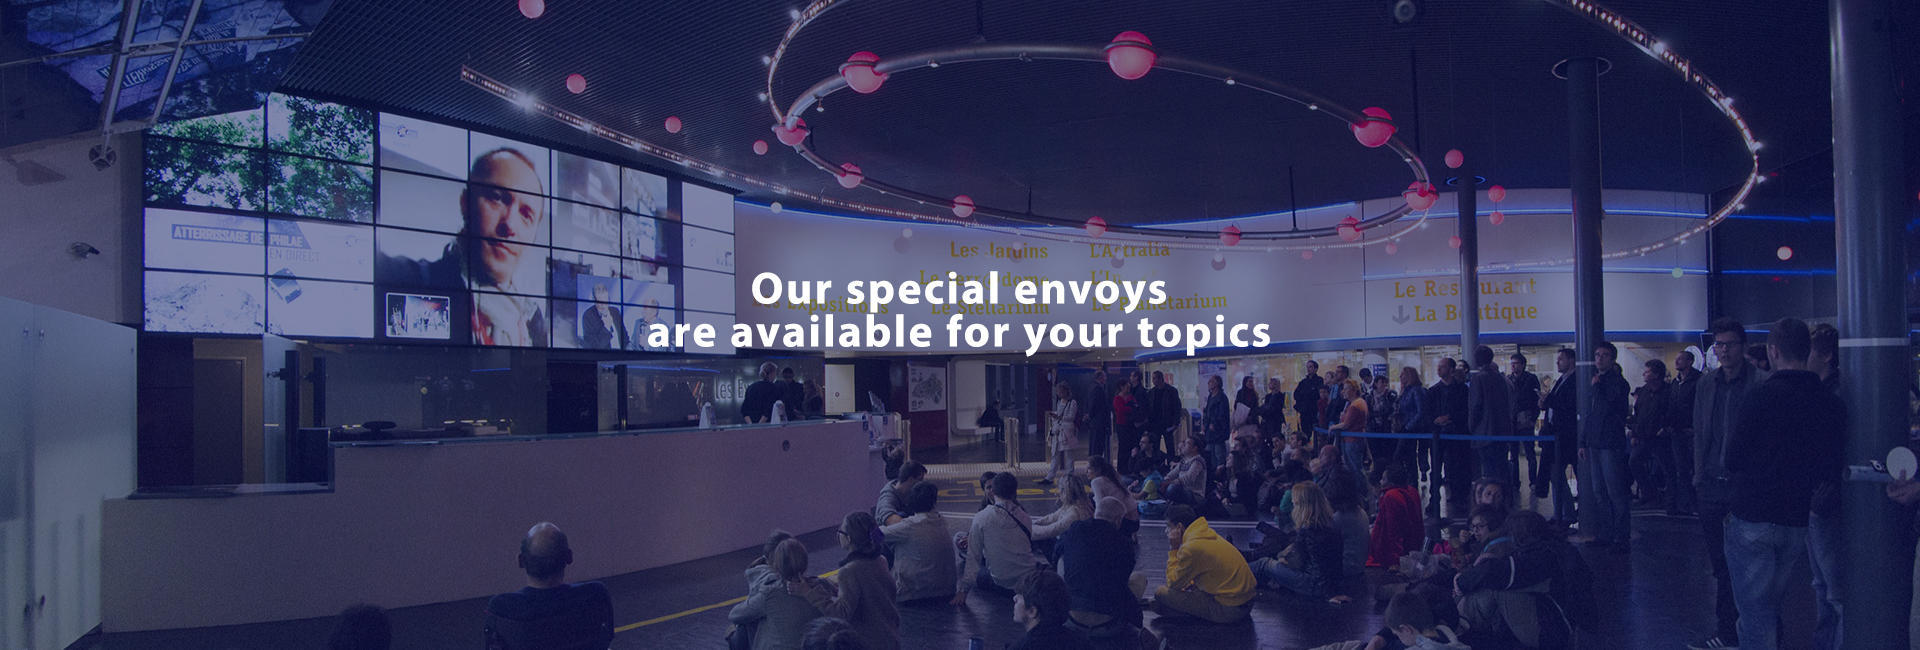 Our special envoys are available for your topics